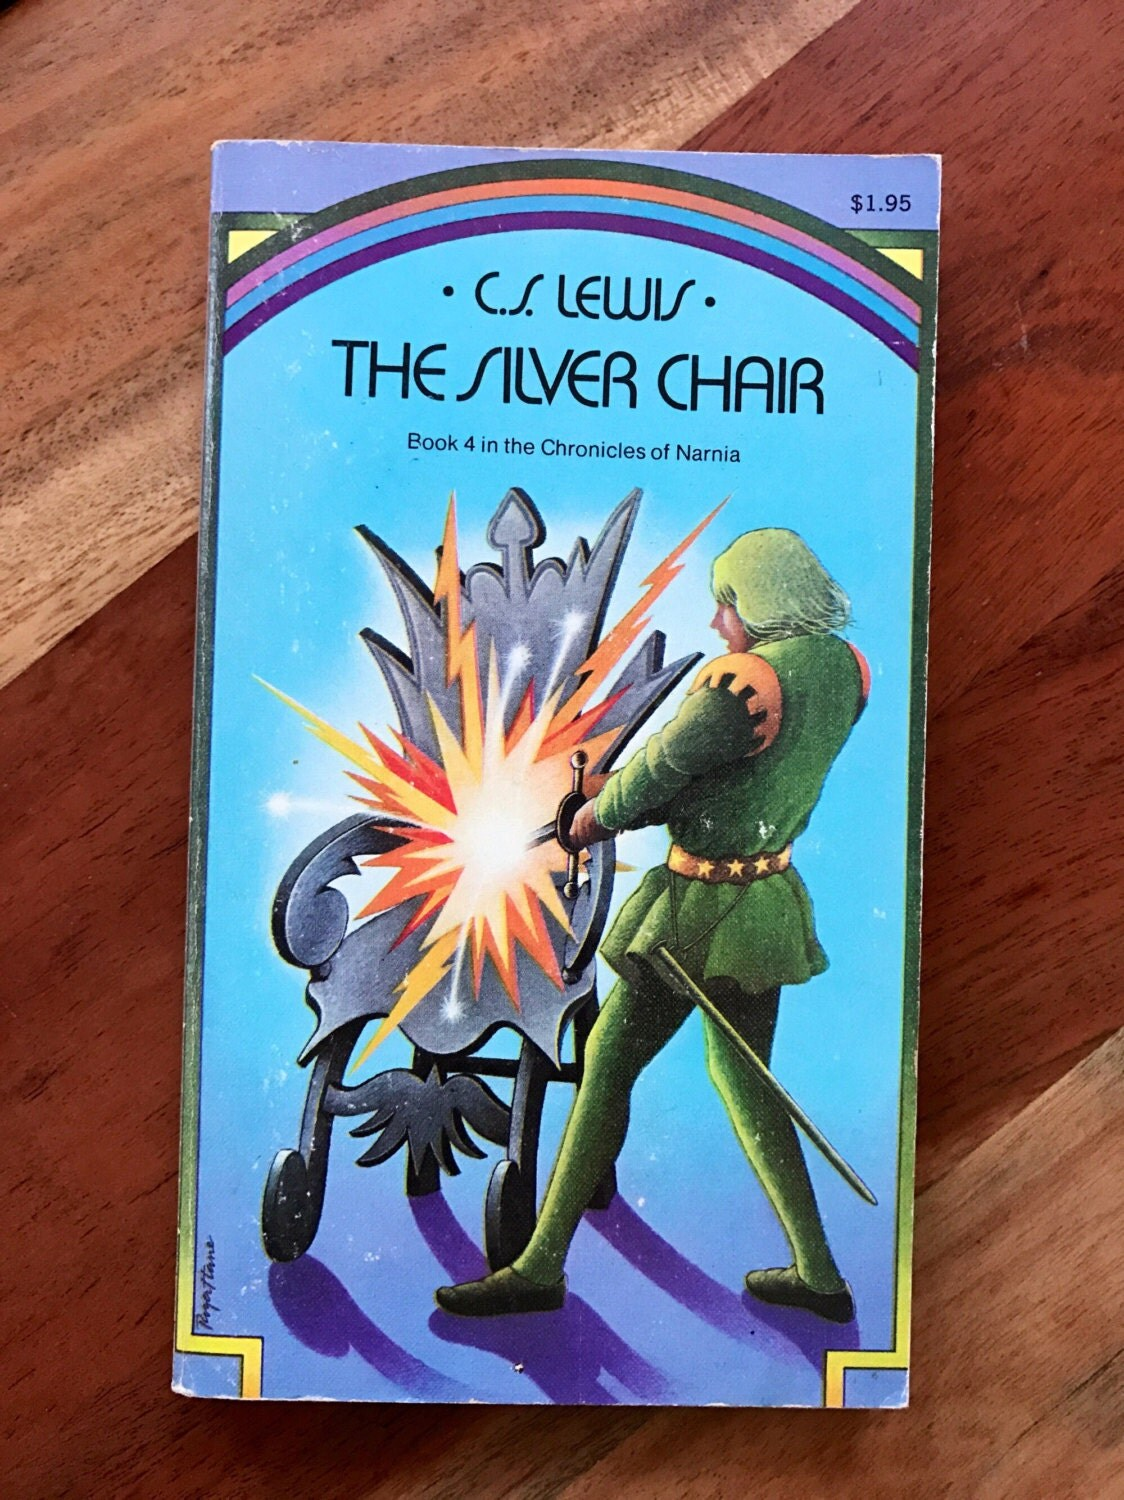 The narnia covers book 4 the silver chair -  Zoom